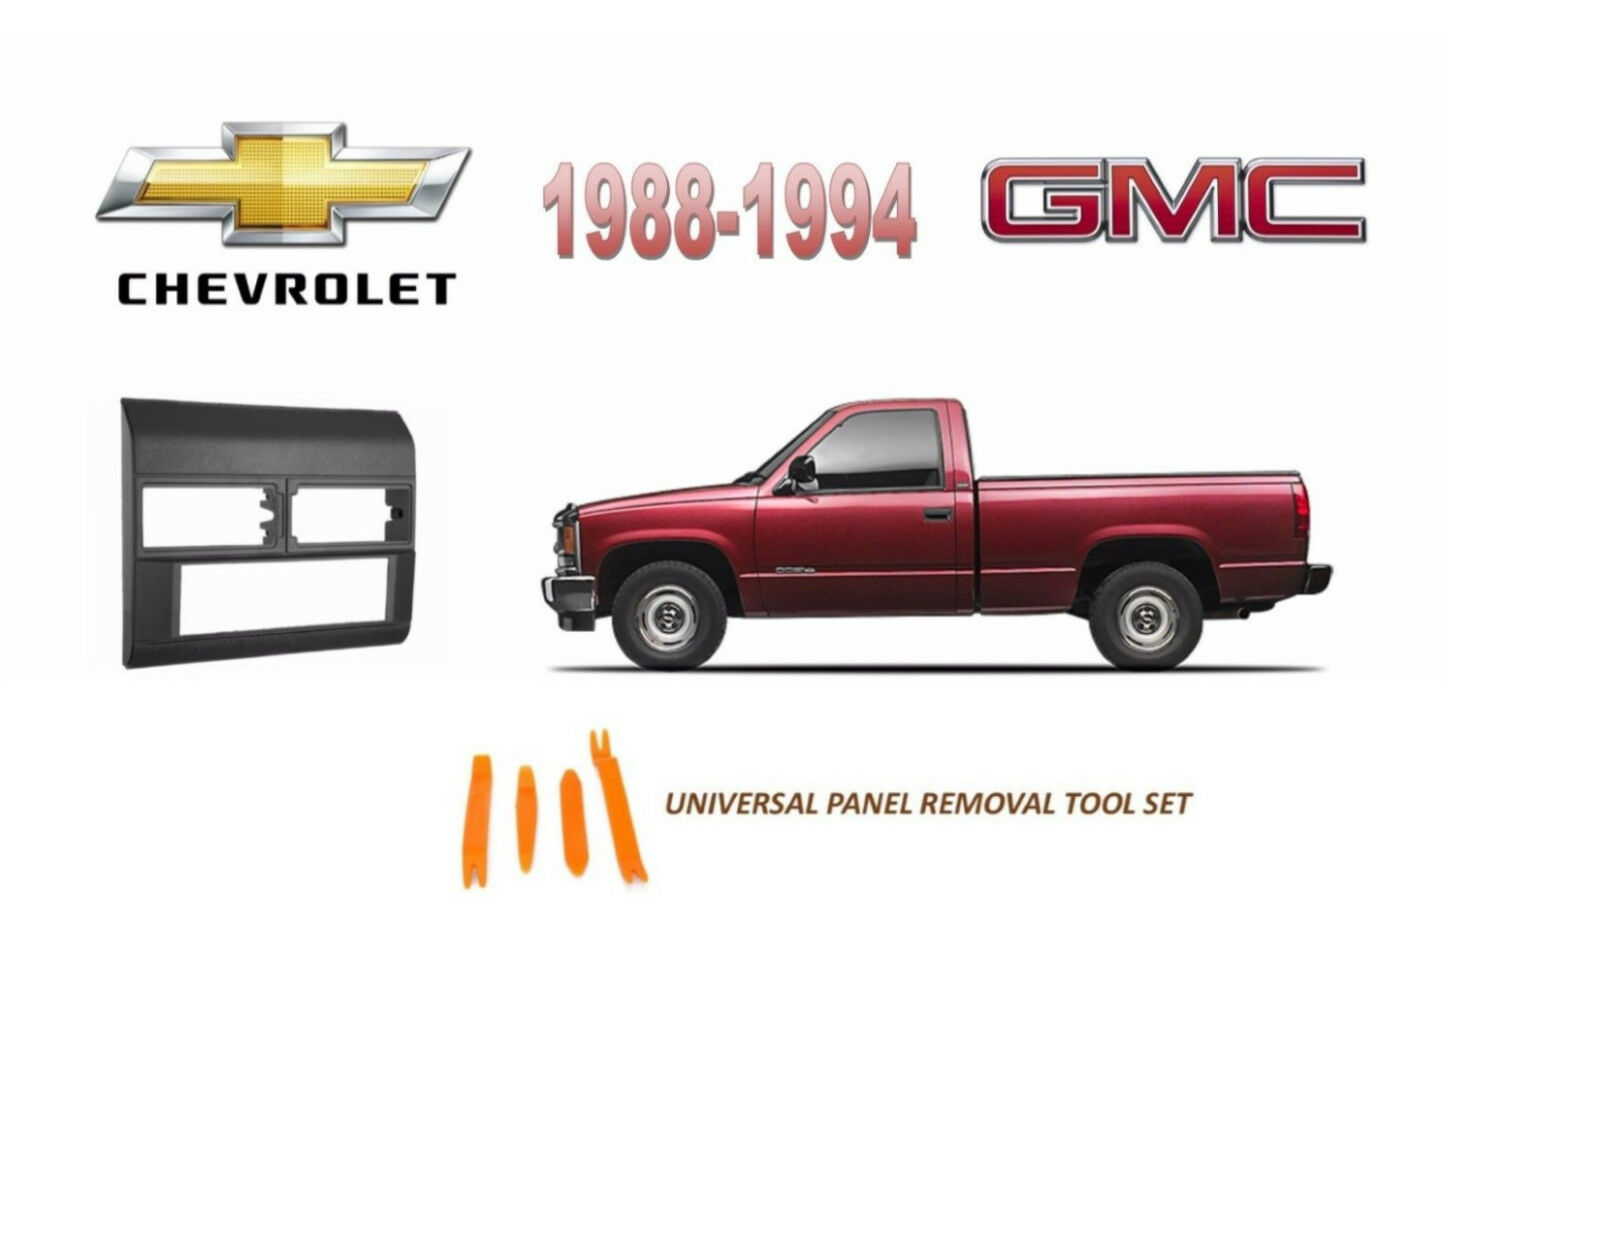 1988 1994 Chevy Gmc Full Size Truck Stereo Install Dash Kit Gray Chevrolet Wiring Harness Adapter Dvd 1 Of 2 See More